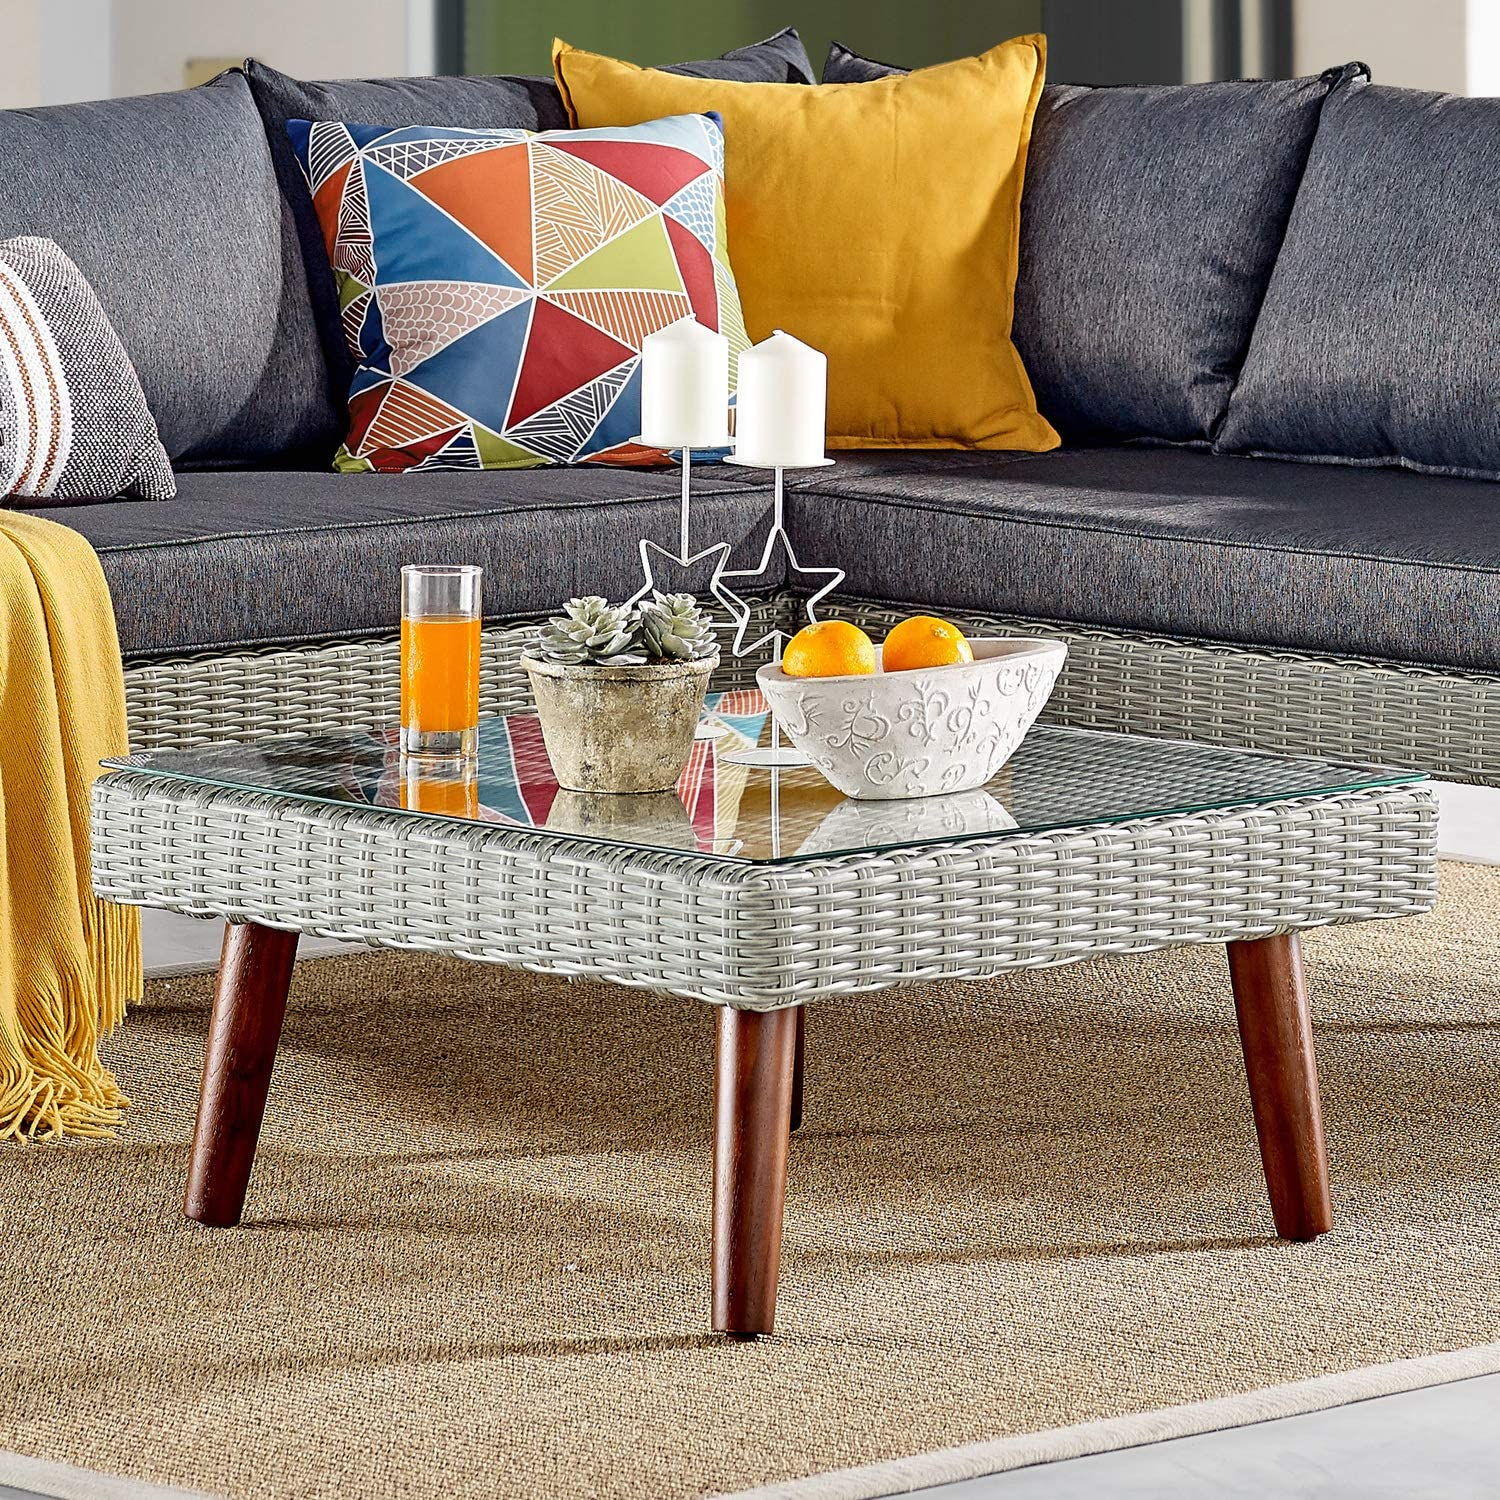 """Albany All-Weather Wicker Outdoor Gray 29"""" Square Coffee Table with Glass Top : Patio, Lawn & Garden"""